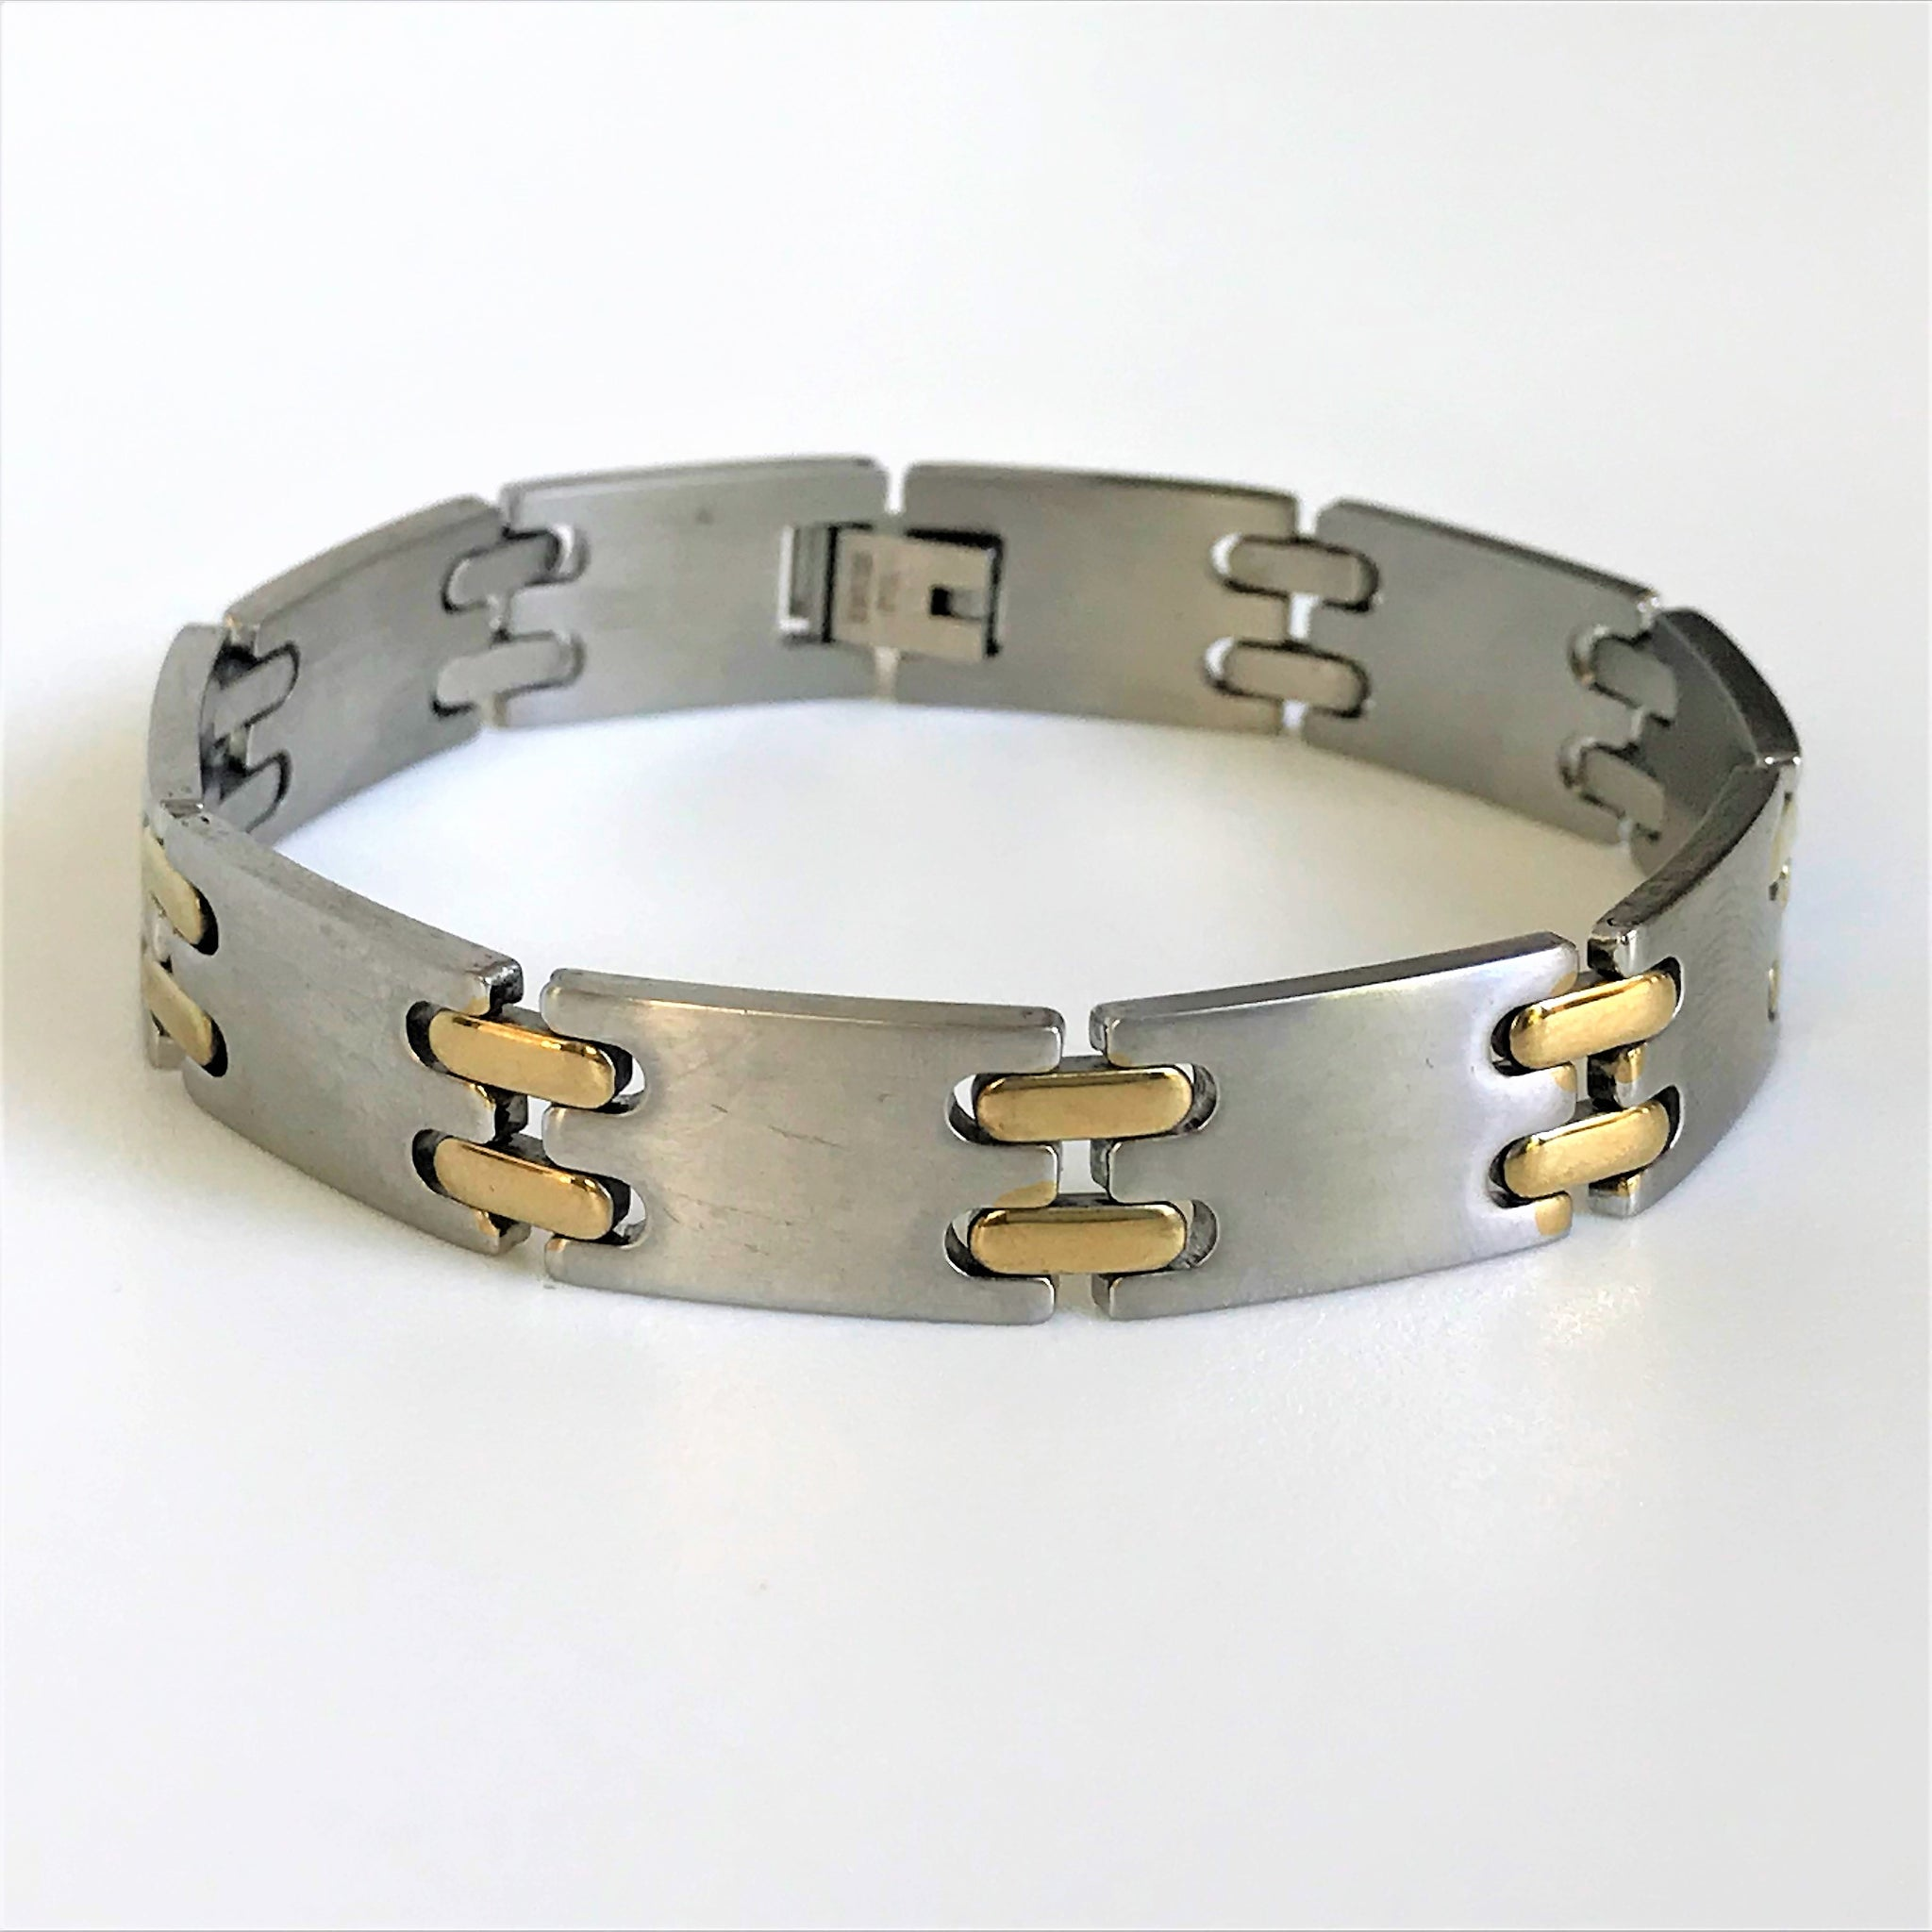 Stainless Steel Man's Bracelet